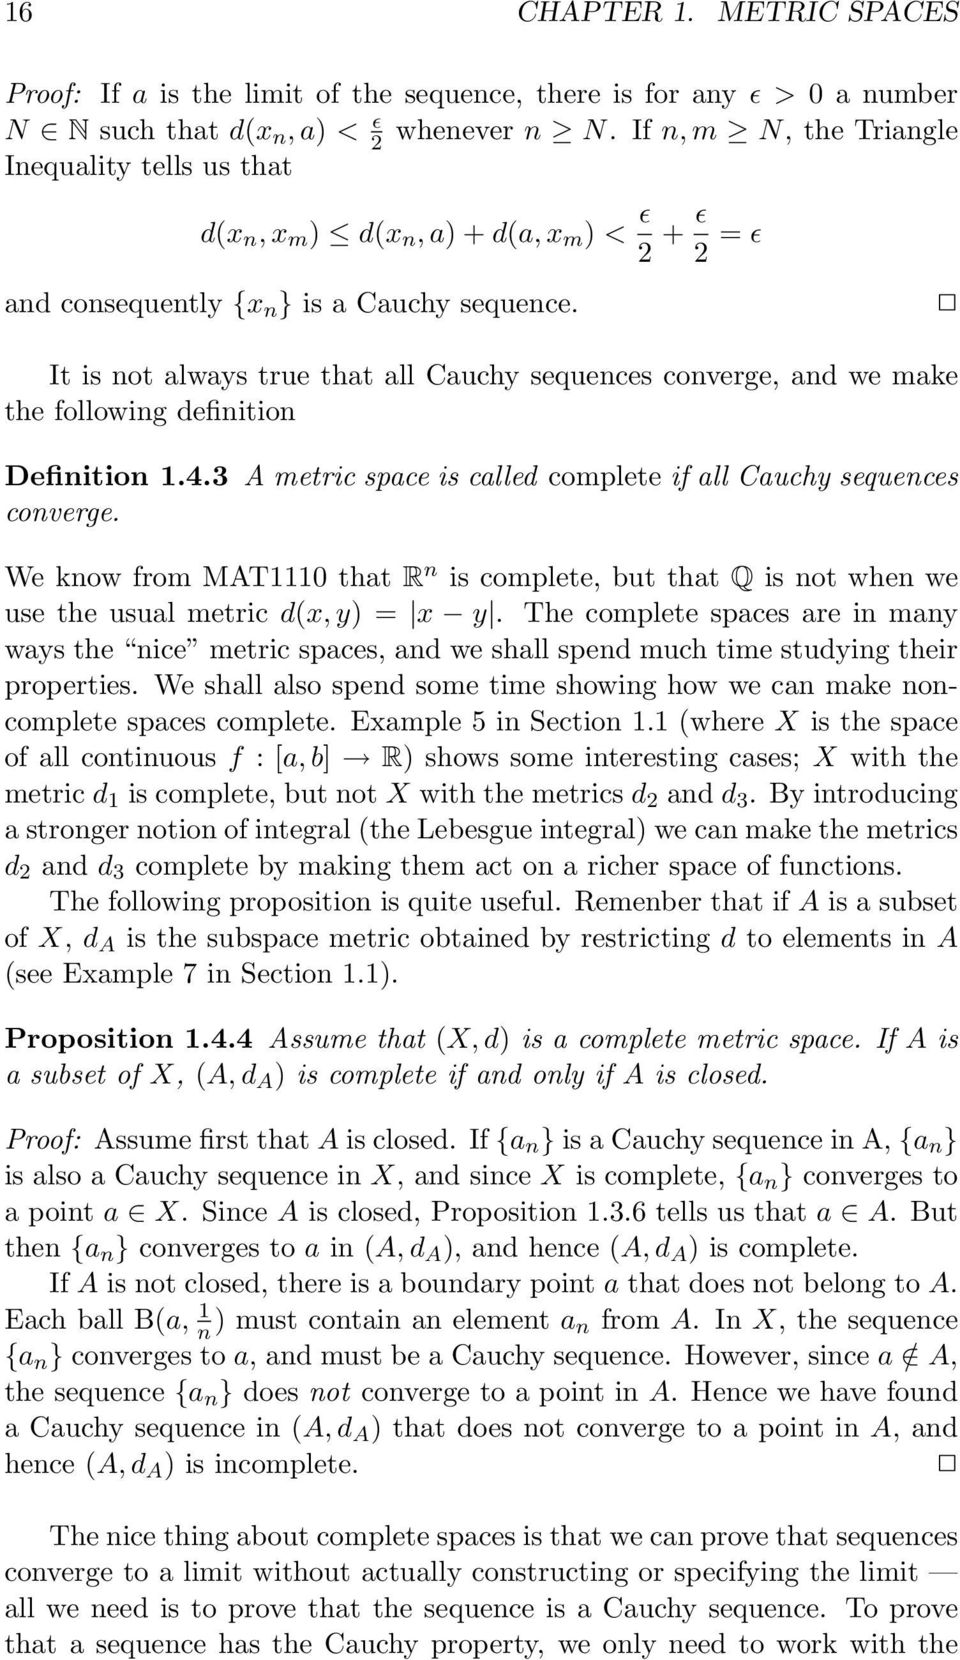 Metric Spaces Chapter 1 Pdf Free Download